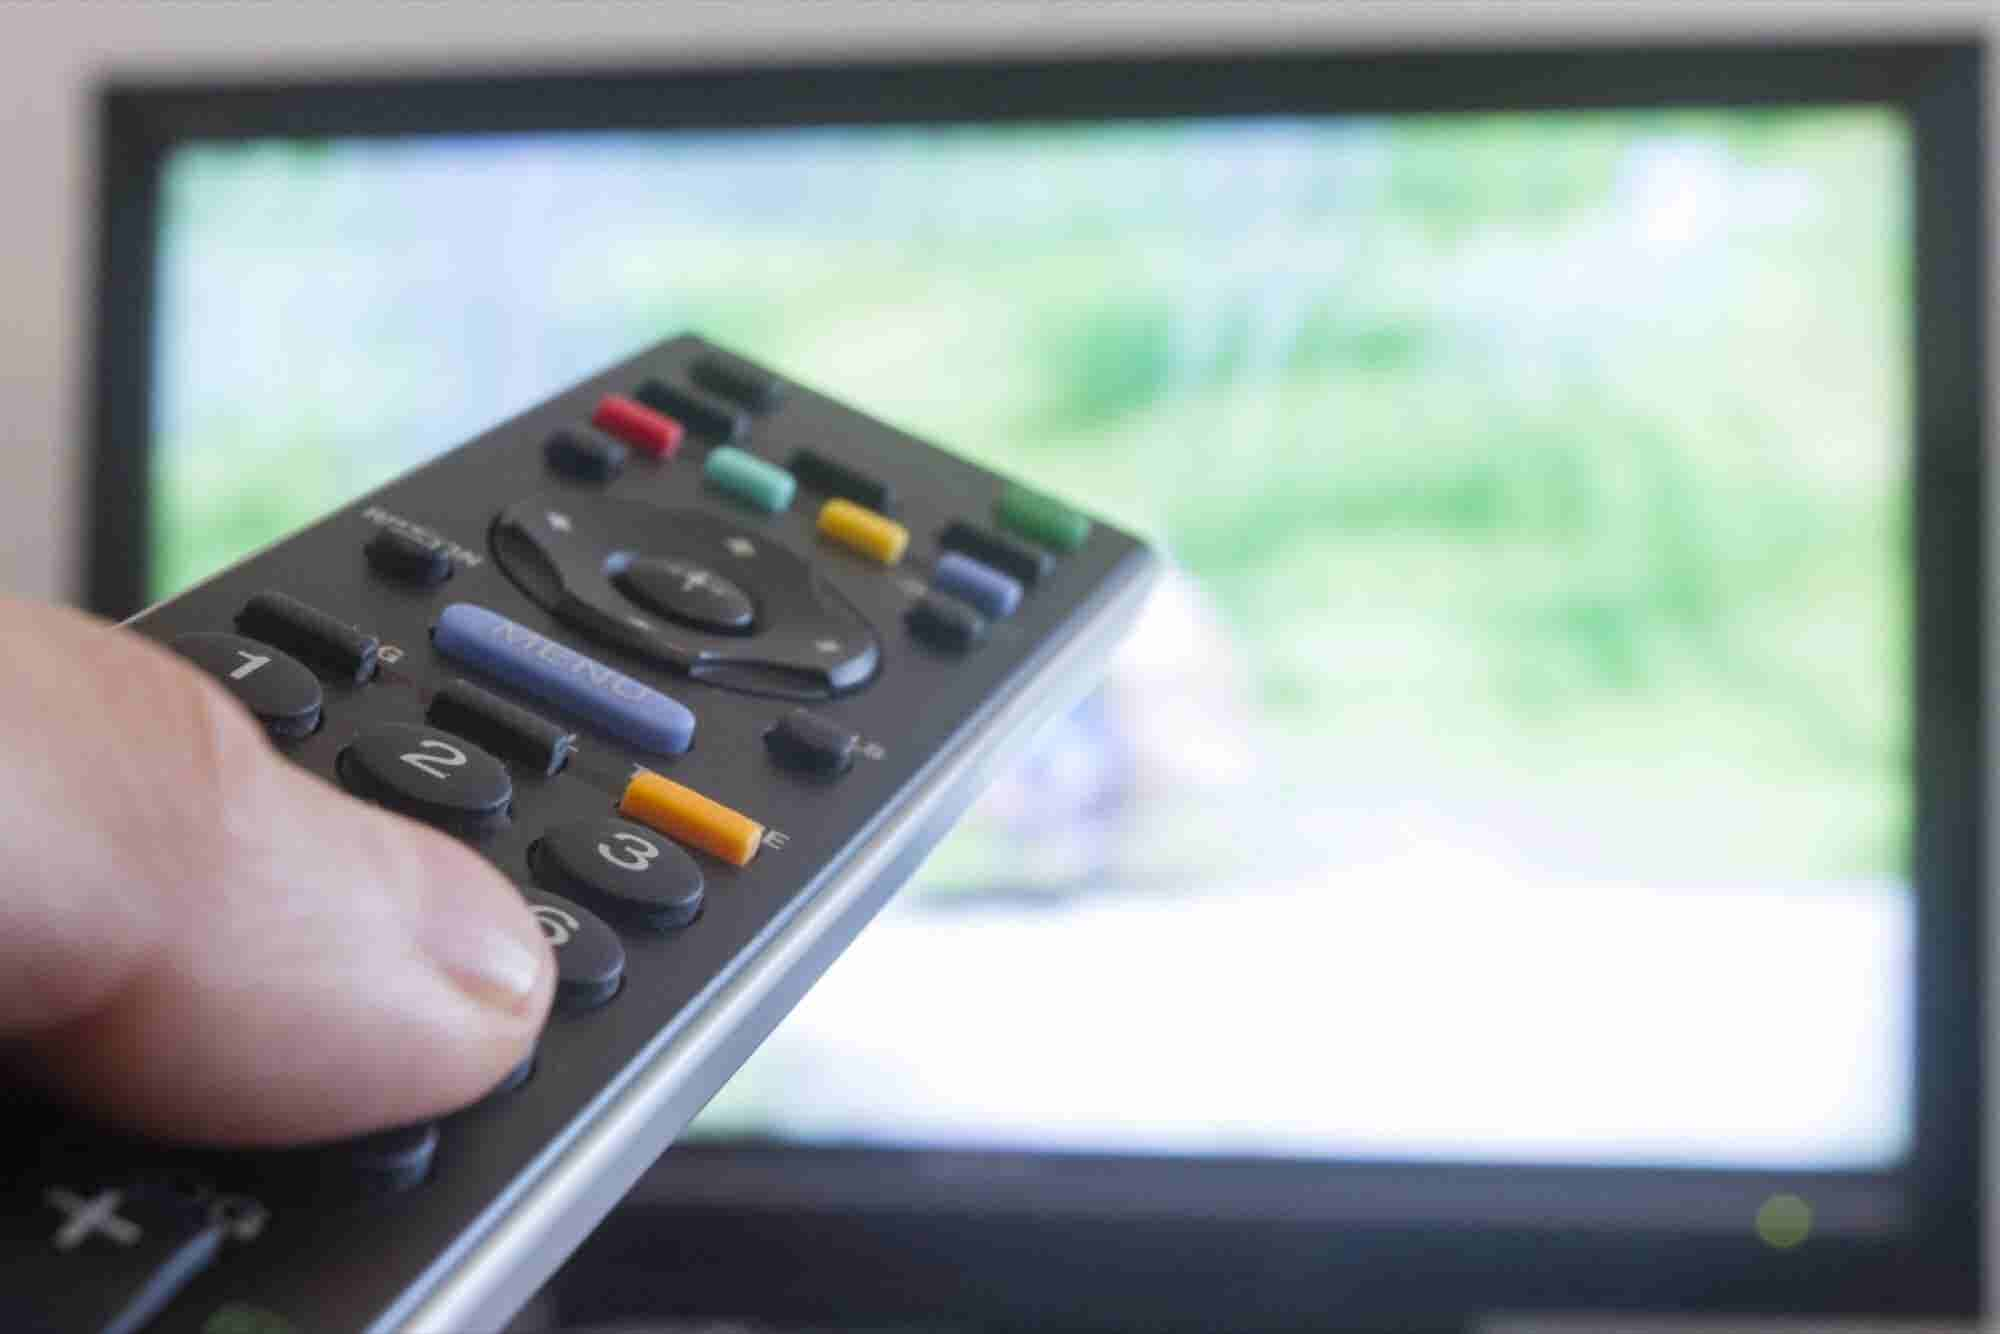 #8 Reasons Why OTT Players will Rule the Connected TV Market